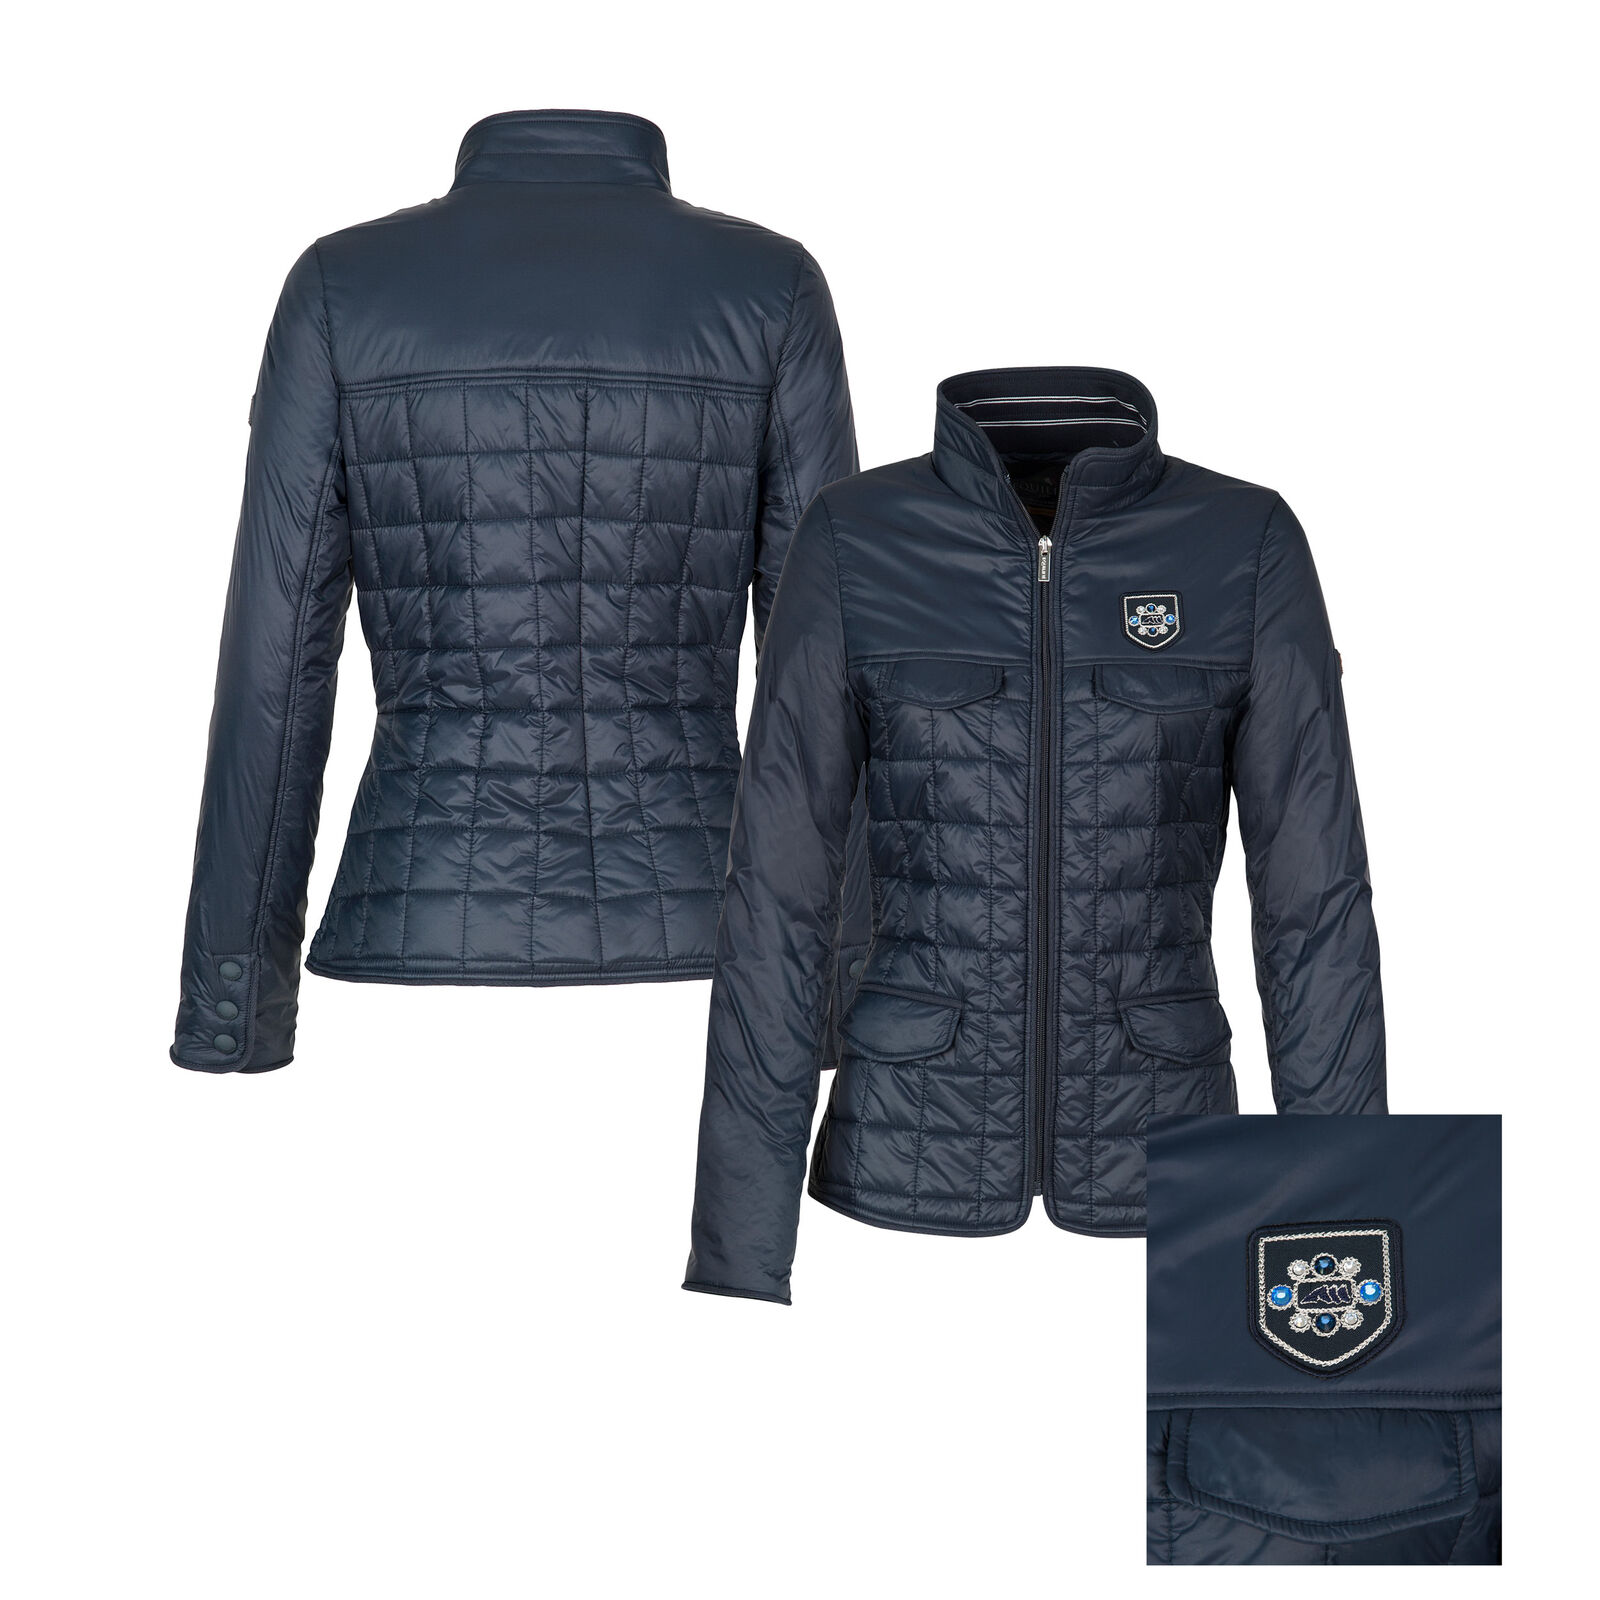 Equiline Equiline Equiline - Damen Steppjacke IVY aab0ae